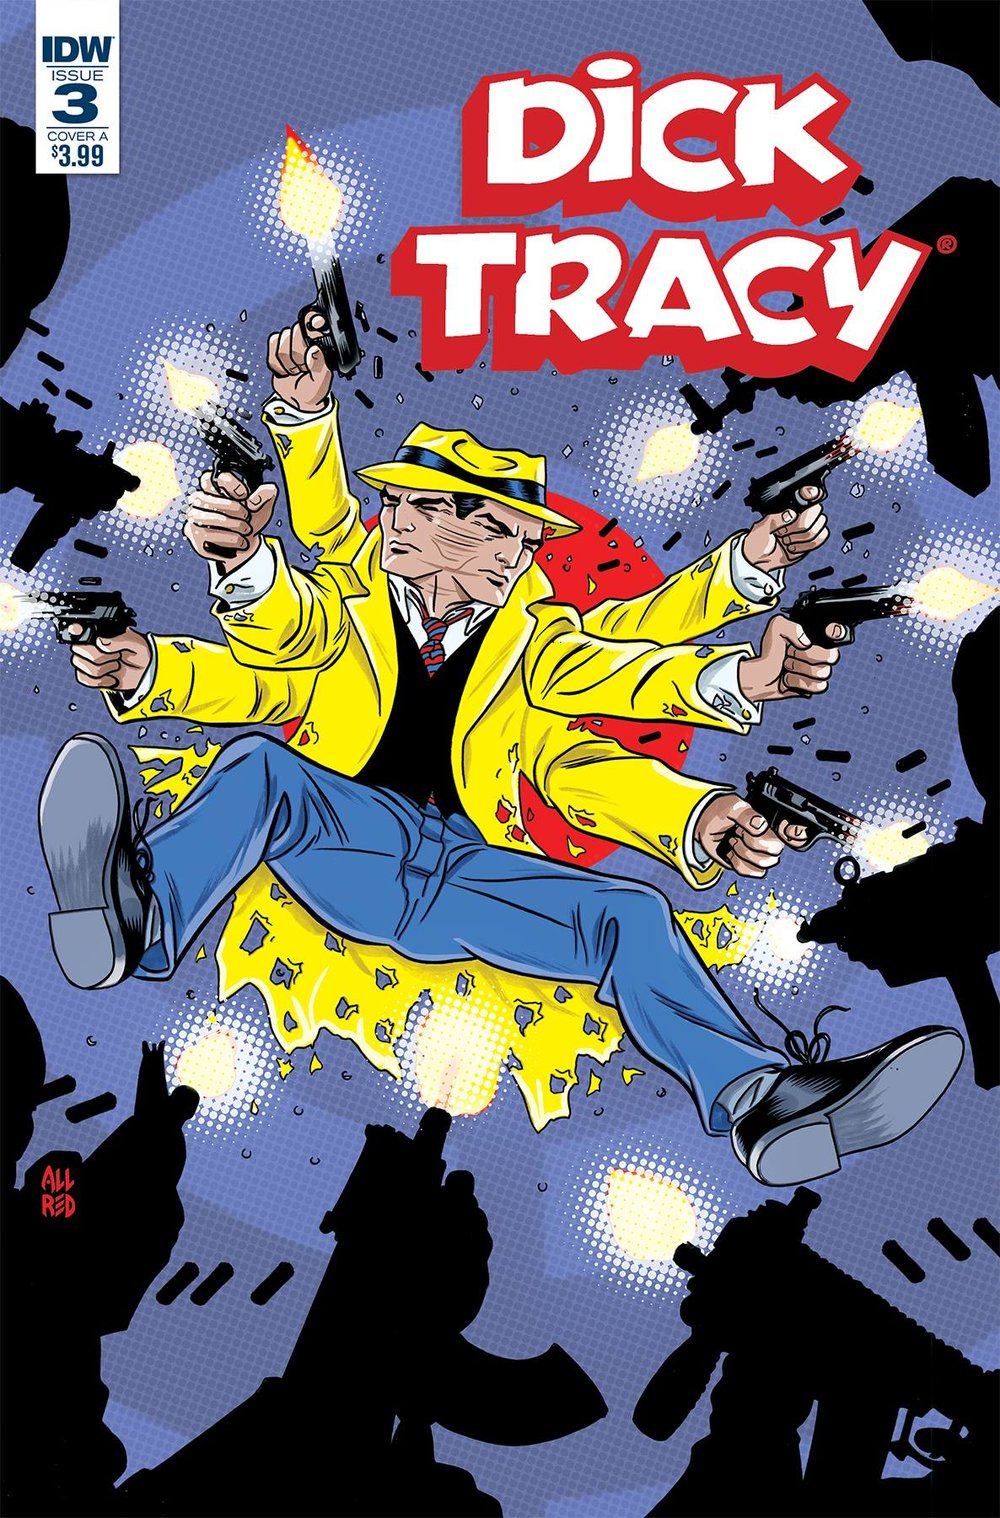 DICK TRACY DEAD OR ALIVE 3 of 4 CVR A ALLRED.jpg